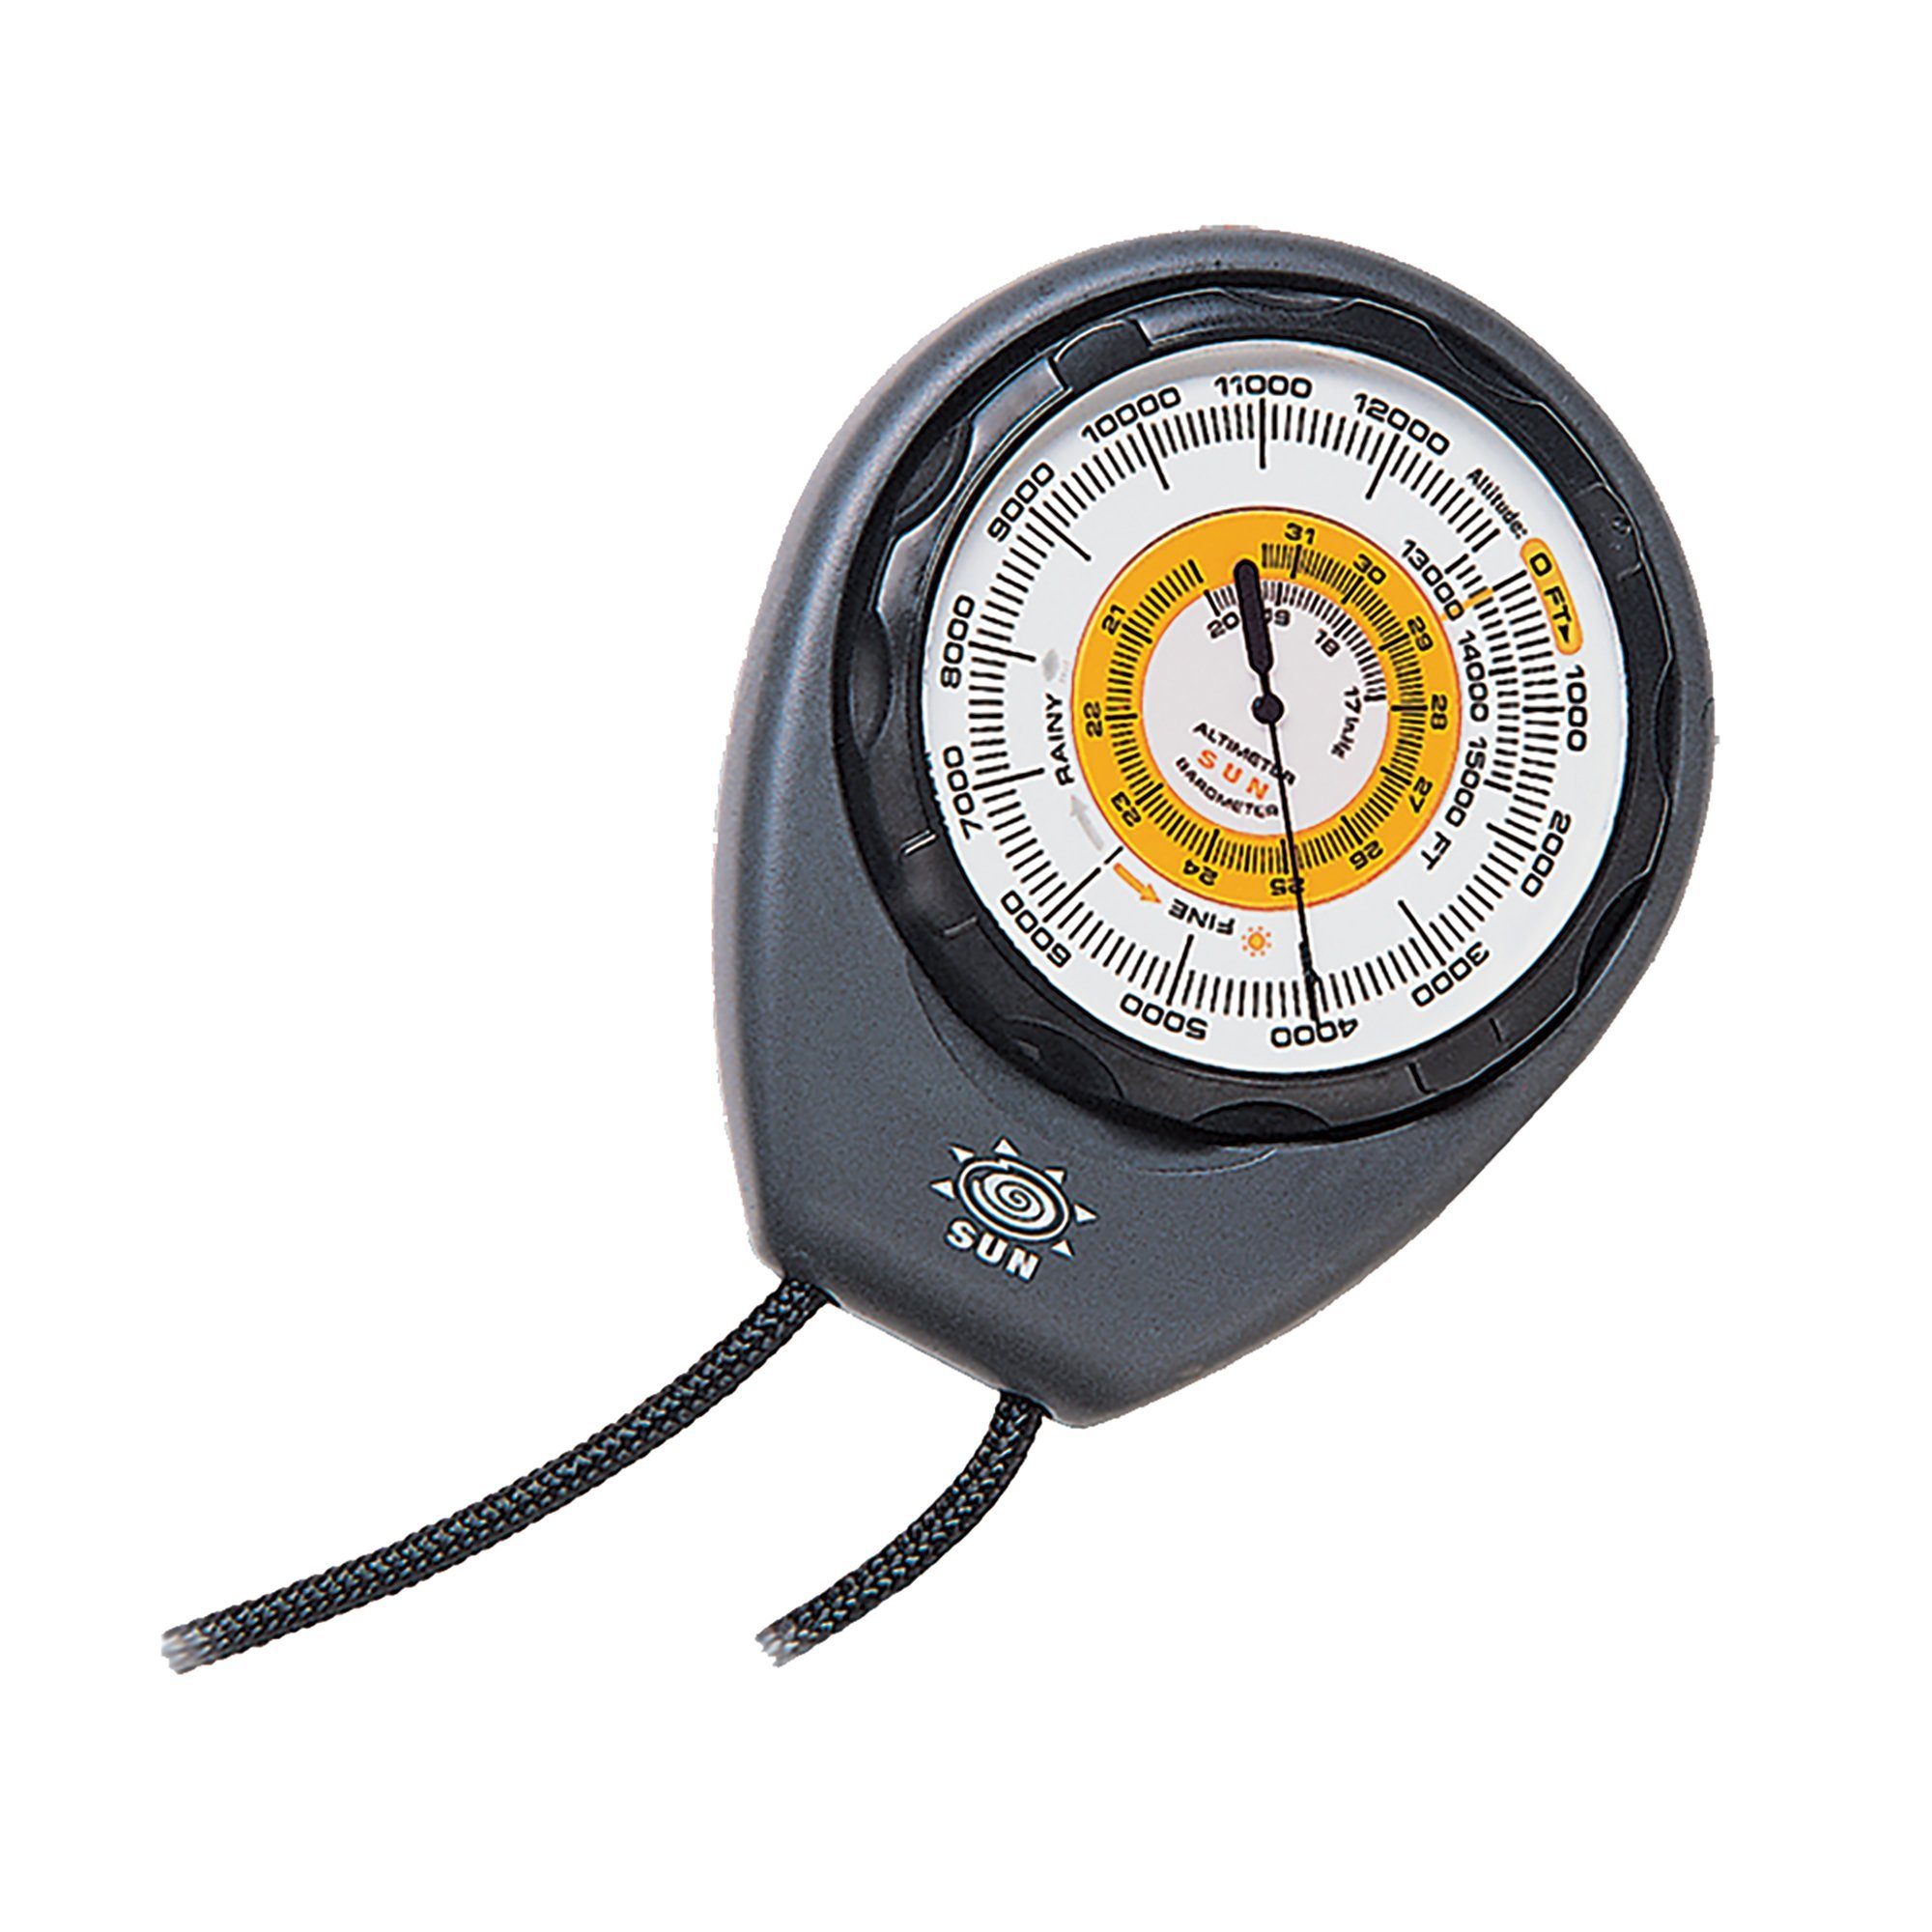 Sun Company Altimeter 203 - Battery-Free Altimeter and Barometer   Weather-Trend Indicator with Rugged ABS Case and Lanyard   Reads Altitude from 0 to 15,000 Feet